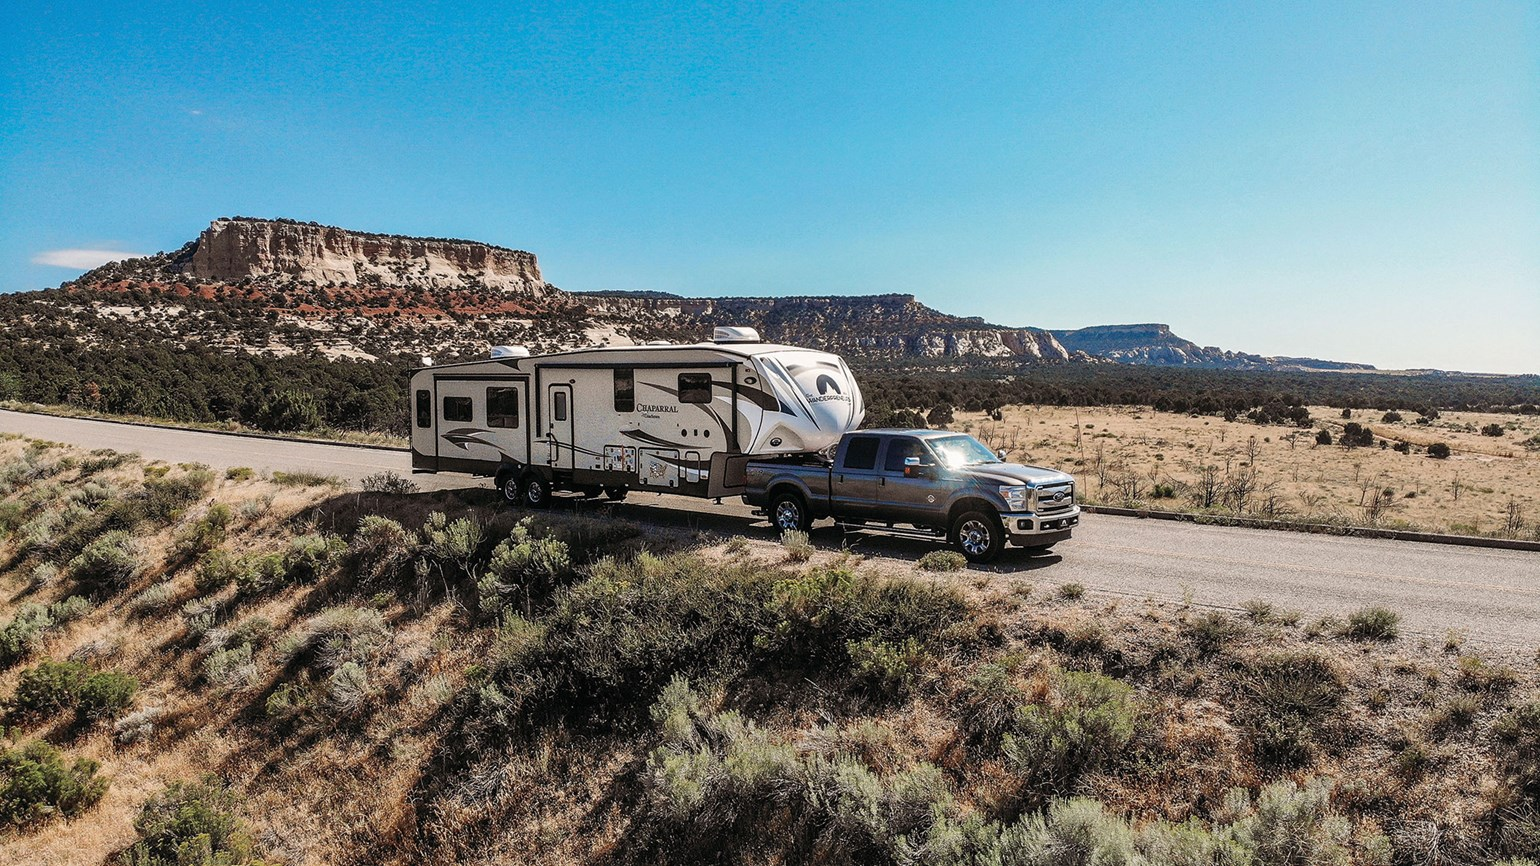 Luxury travelers booking RV road trips this summer